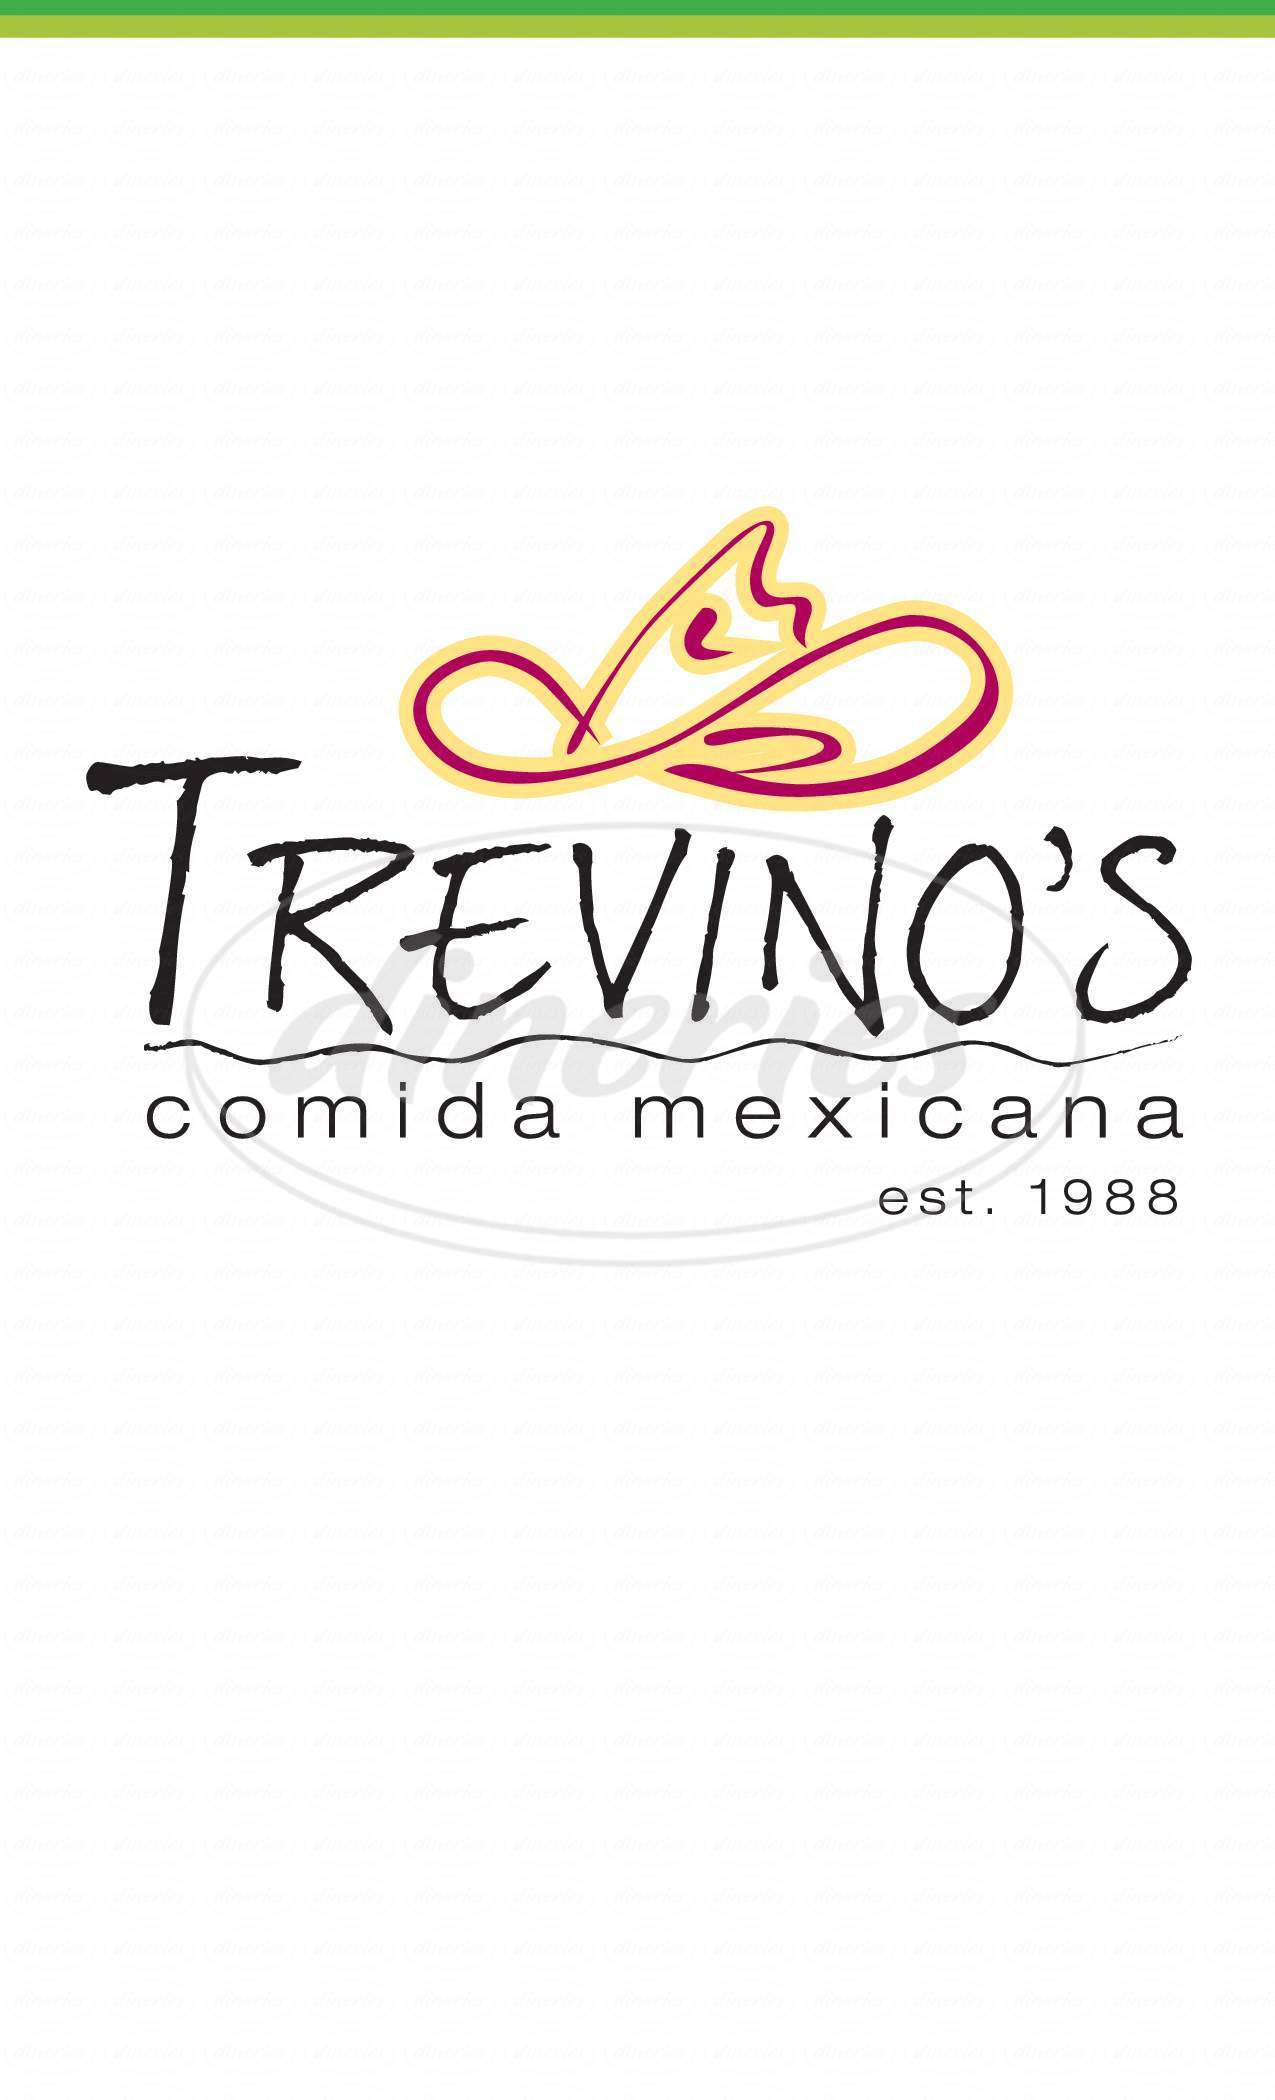 menu for Trevino's